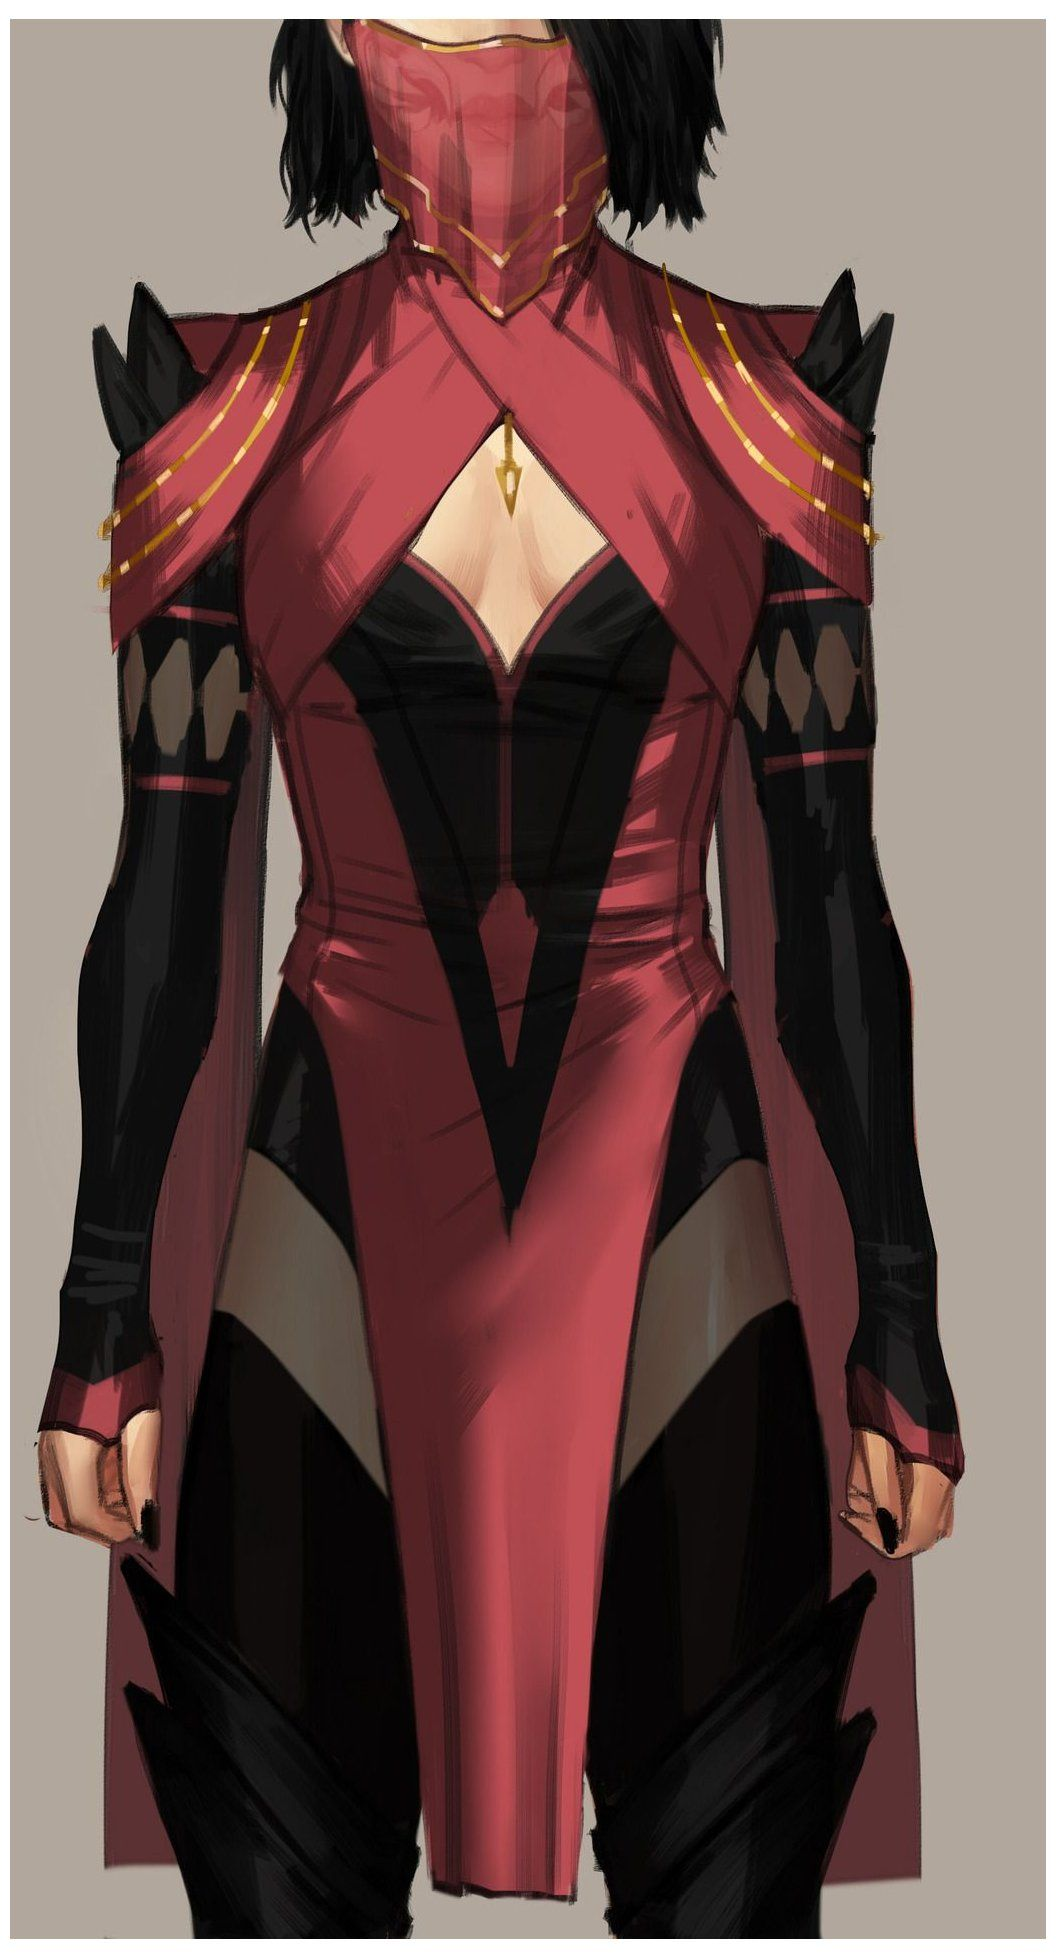 Farewell #fantasy #clothing #design #outfit #ideas Posts tagged mortal  kombat — Farewell | Fantasy clothing, Character outfits, Costume design